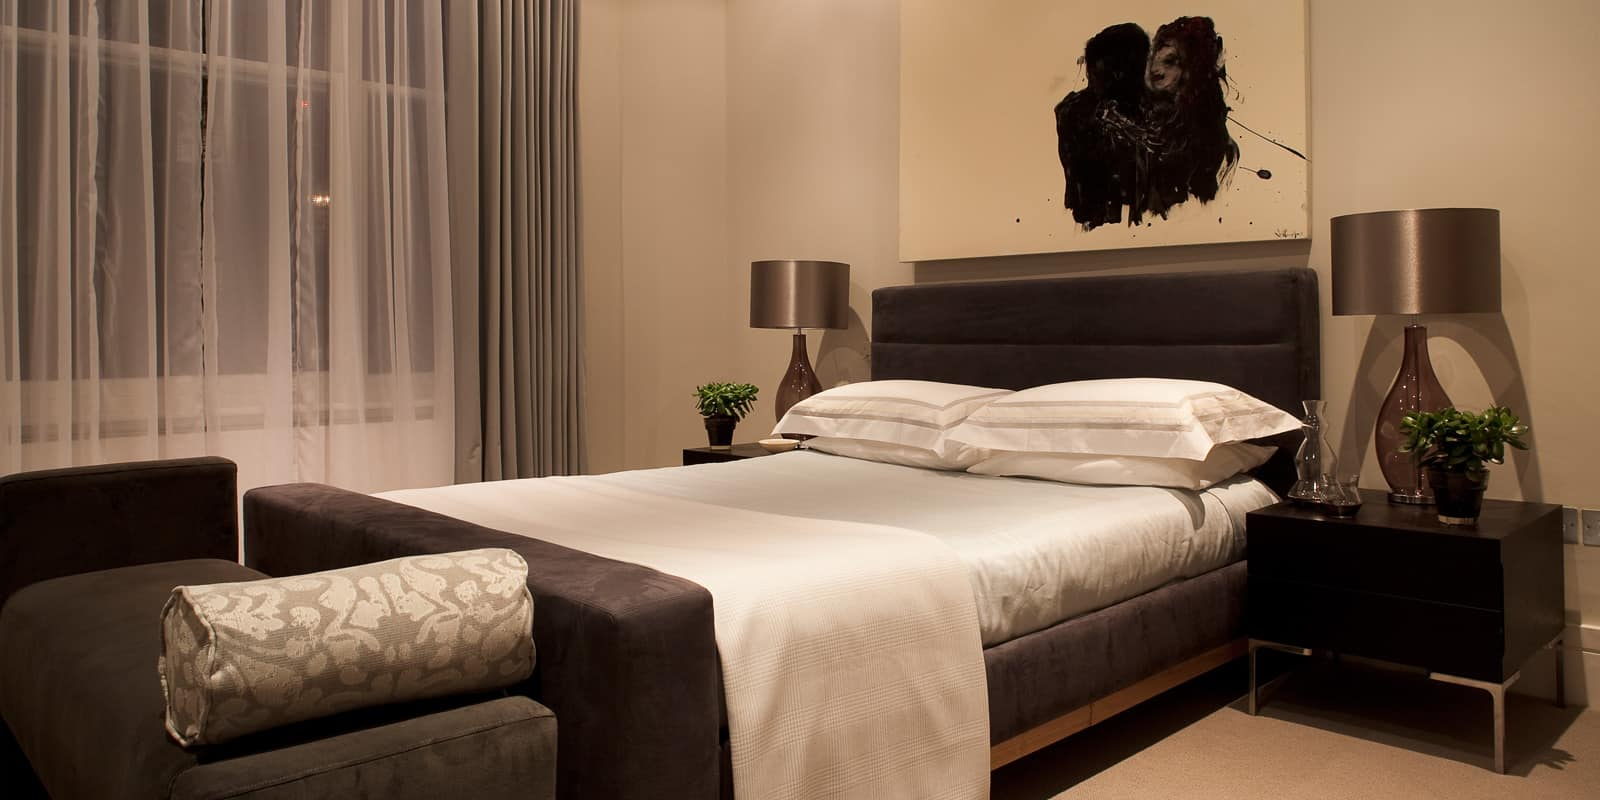 luxurious bedroom in a black and grey colour palette with hints of metallic textures